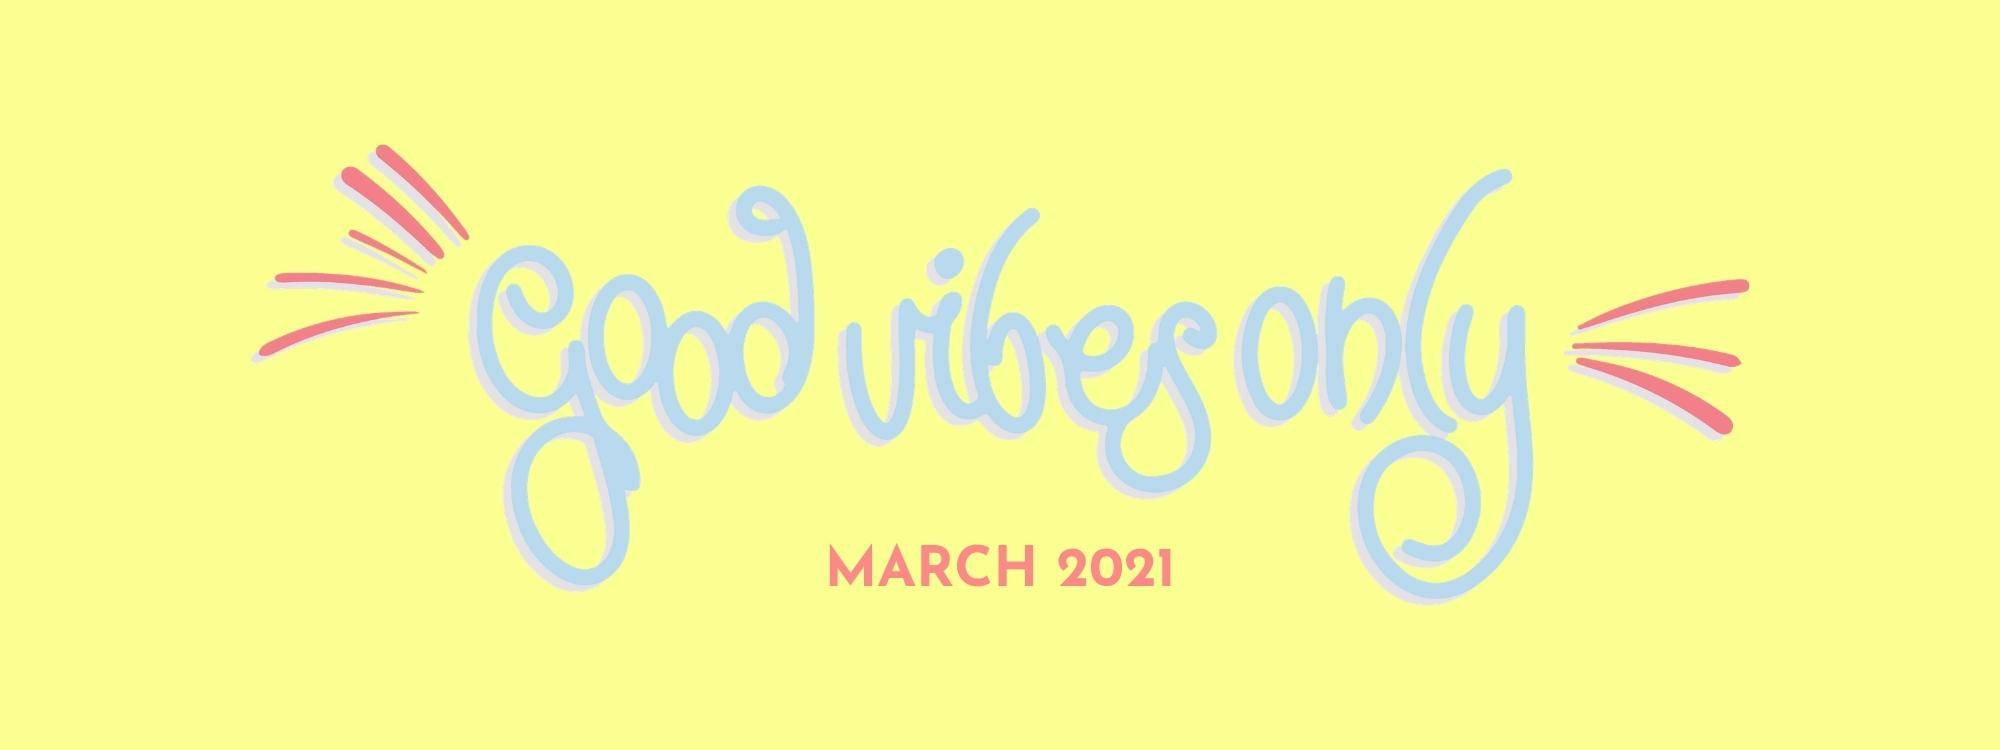 Good Vibes Only Collection Coming March 2021